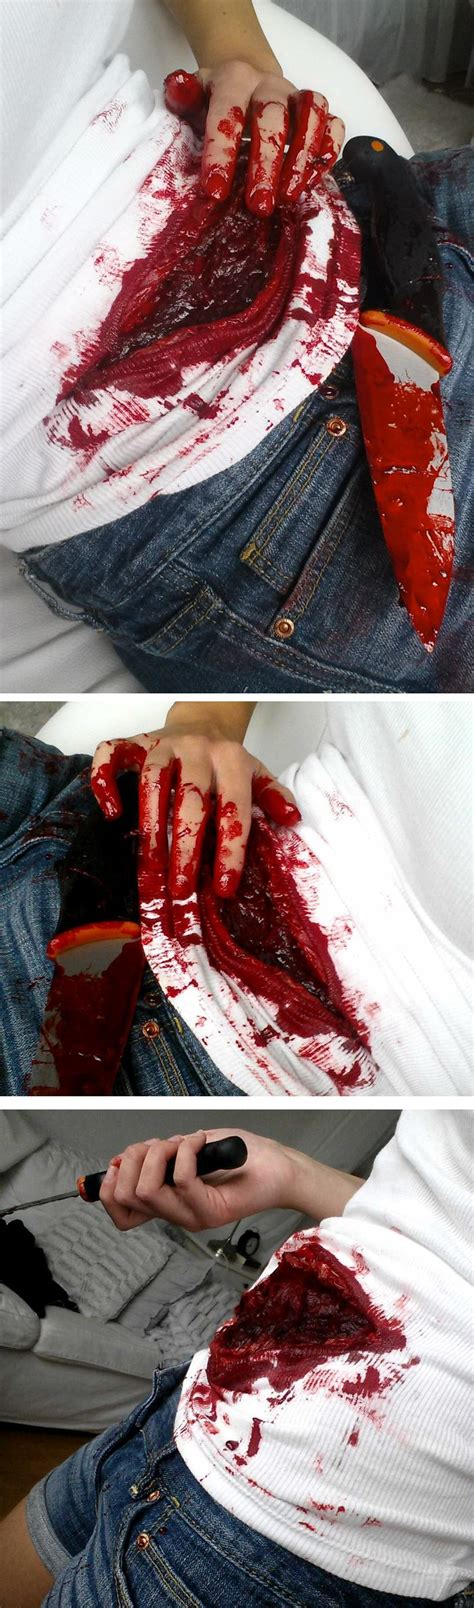 zombie shirt tutorial the 25 best ideas about wound makeup on pinterest